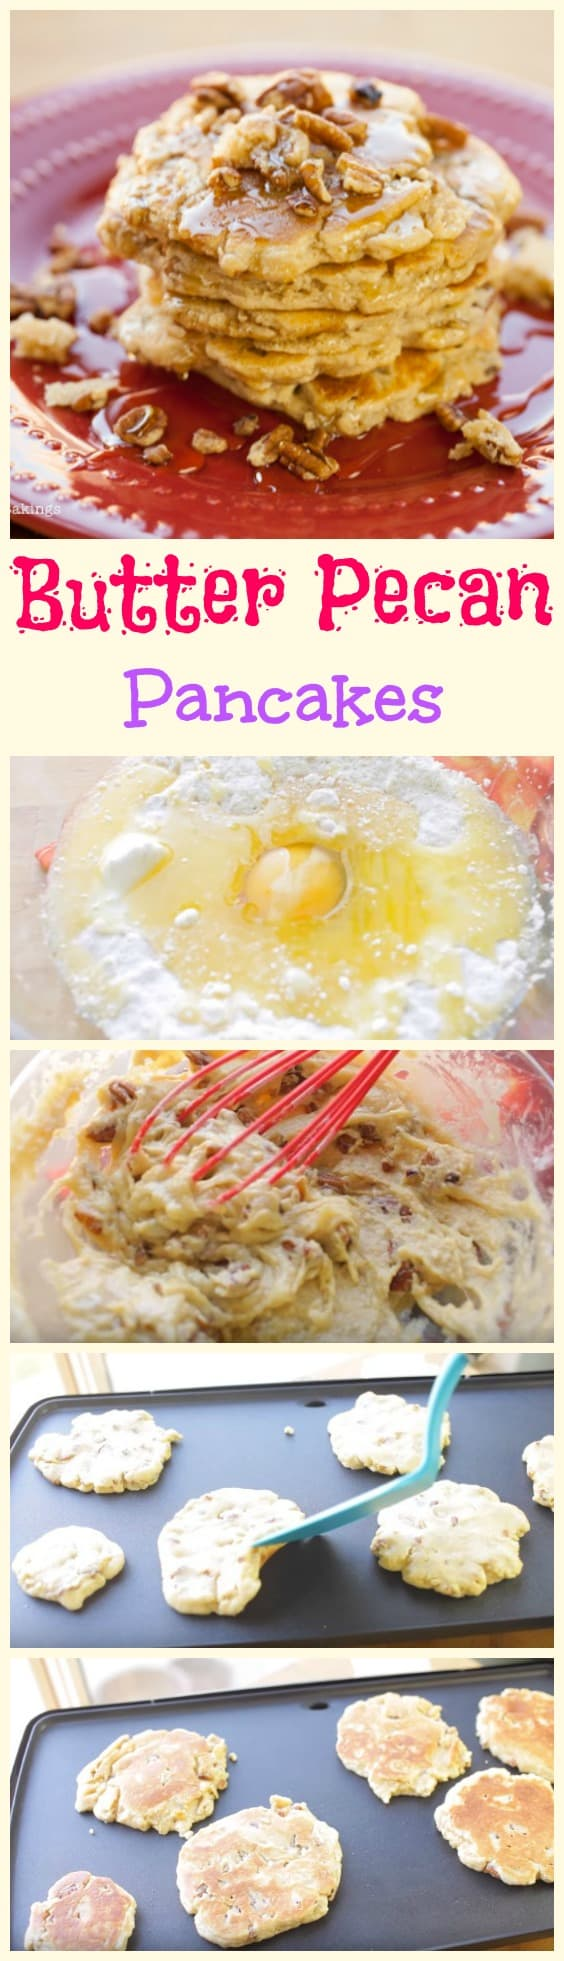 Butter pecan pancakes step by step guide